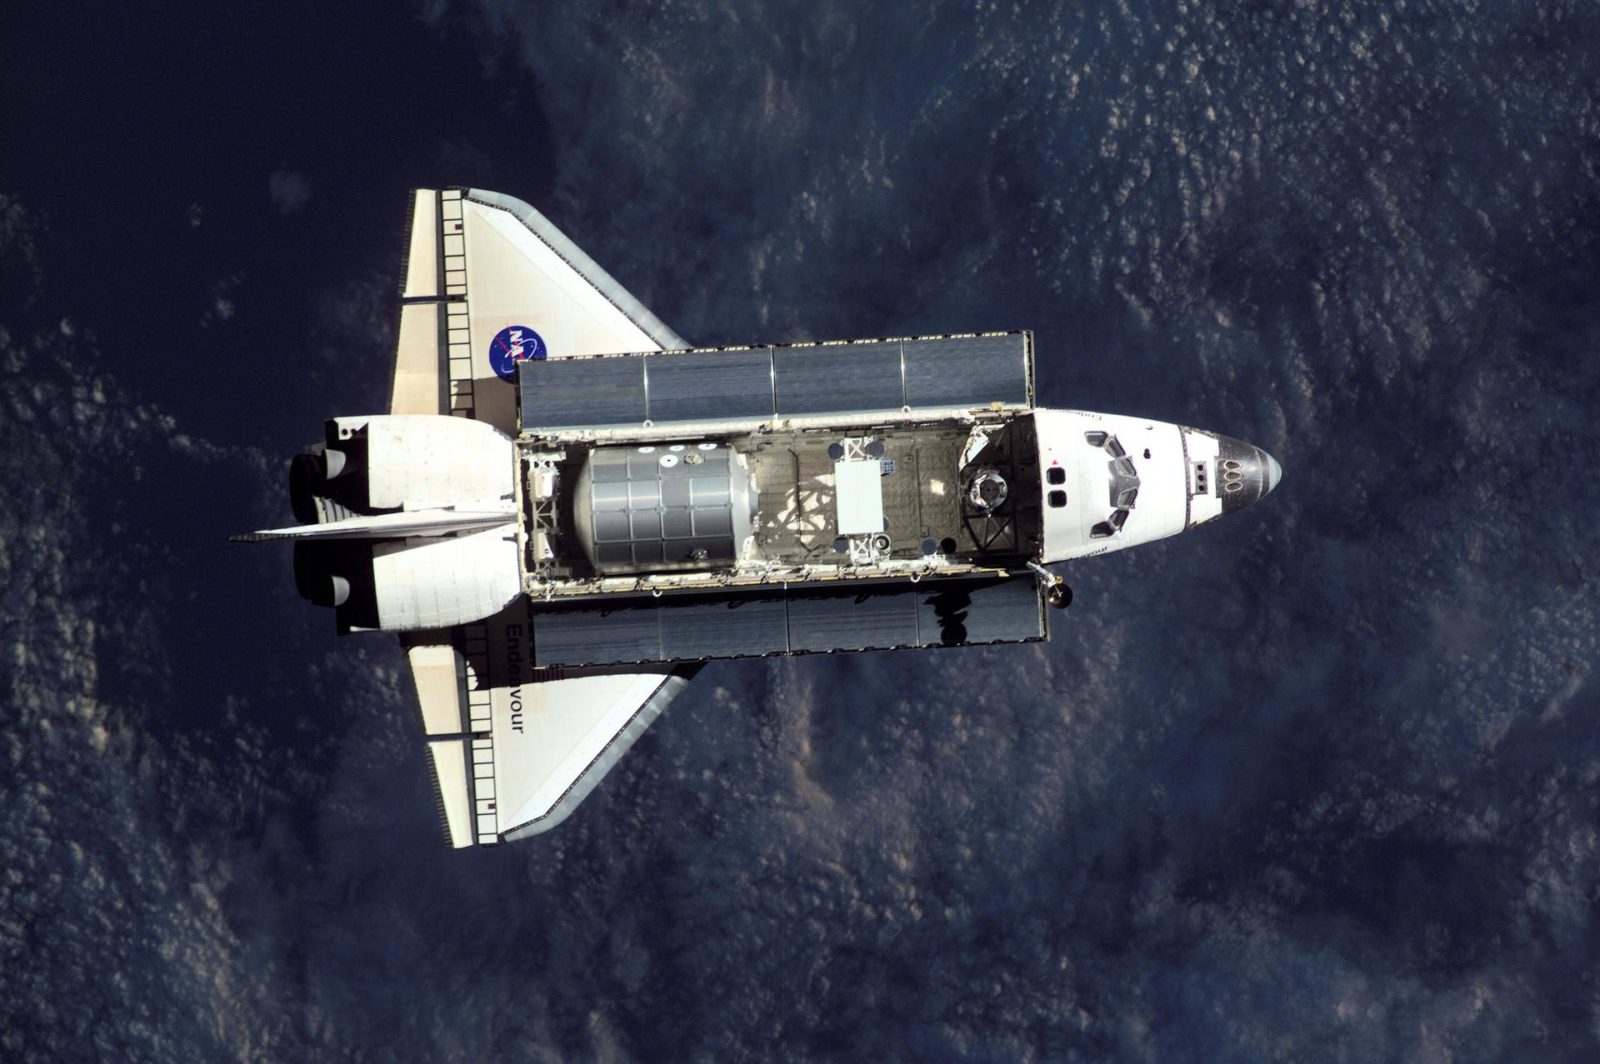 View of the docking approach of Endeavour taken during Expedition Three